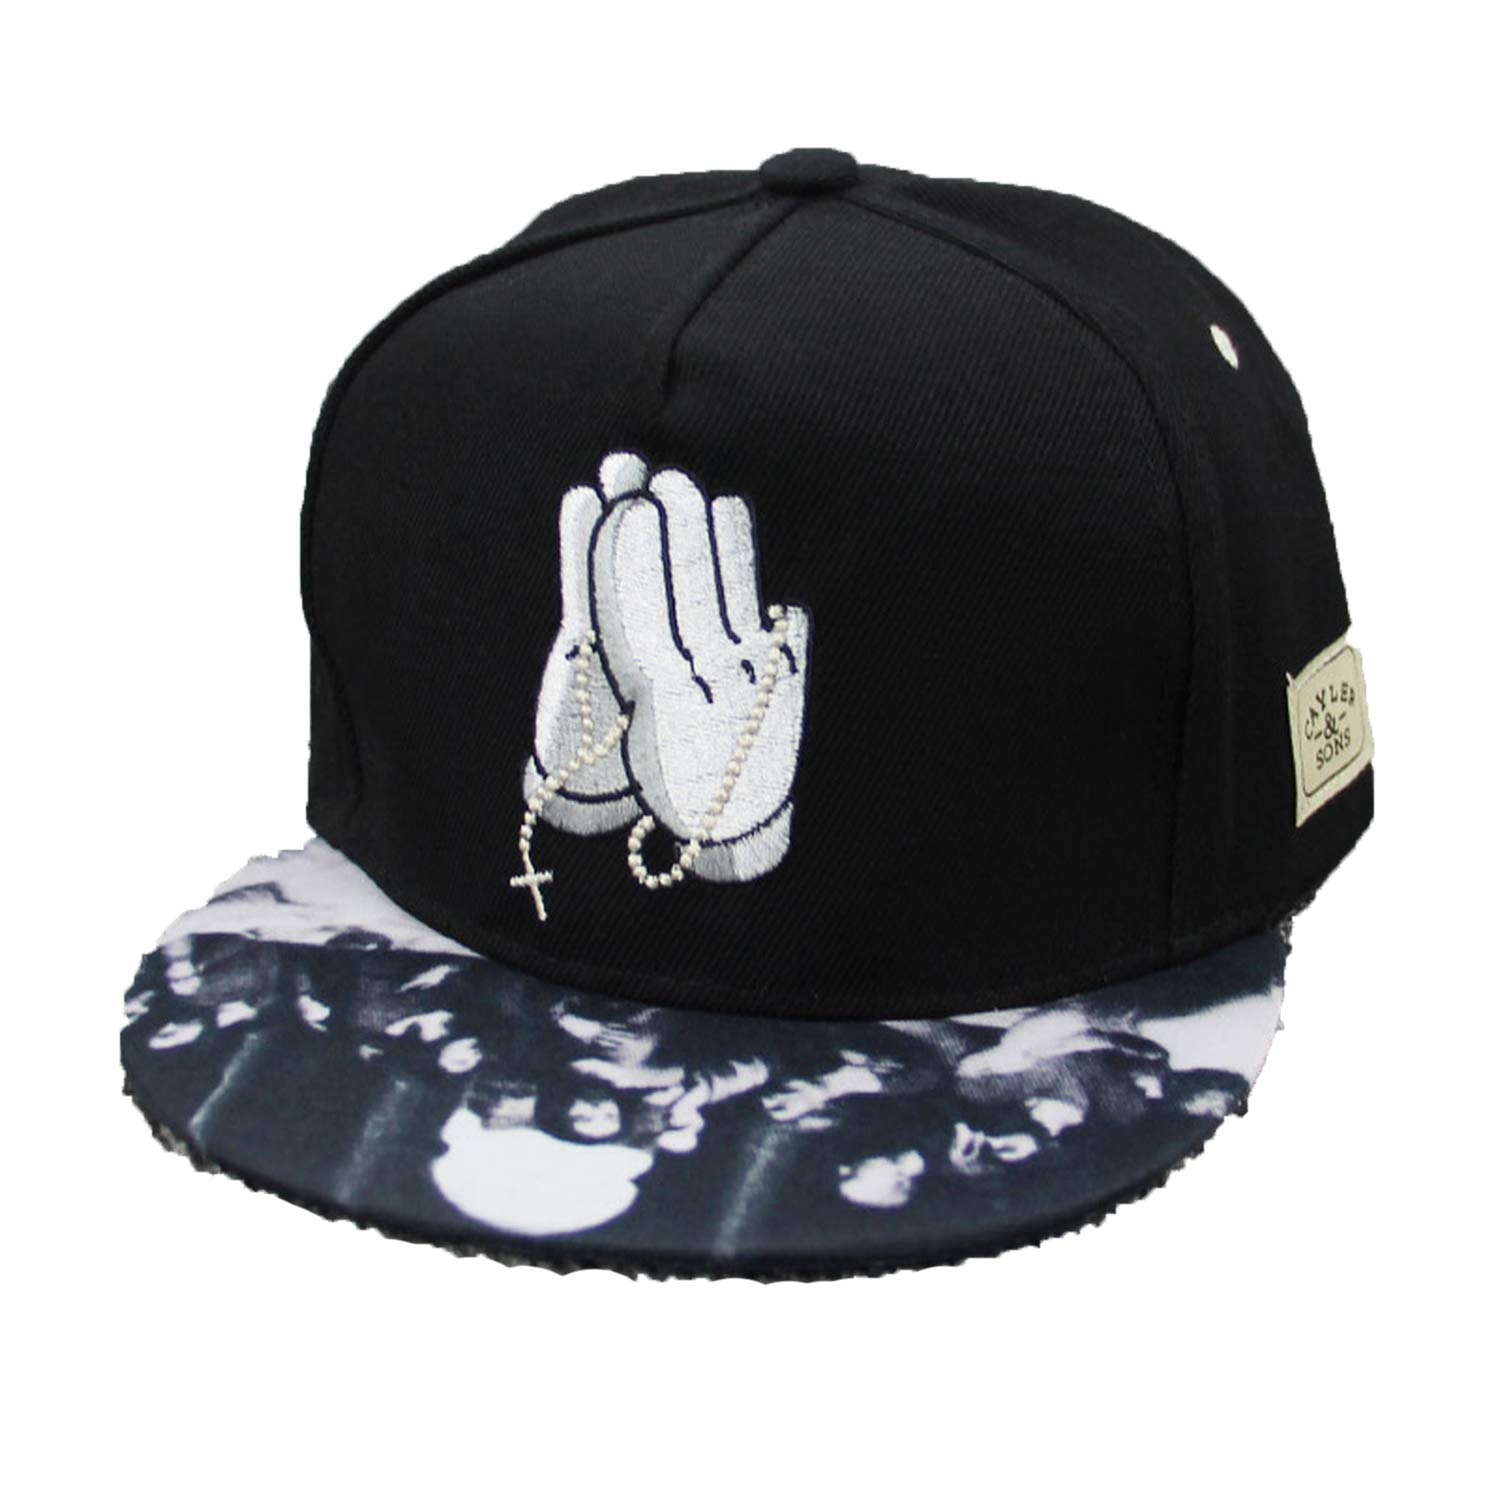 New Buddha Palm Baseball Cap Hip Hop Caps for Men Womens Leather Sun Hat Snapback Hats Unisex Embroidery